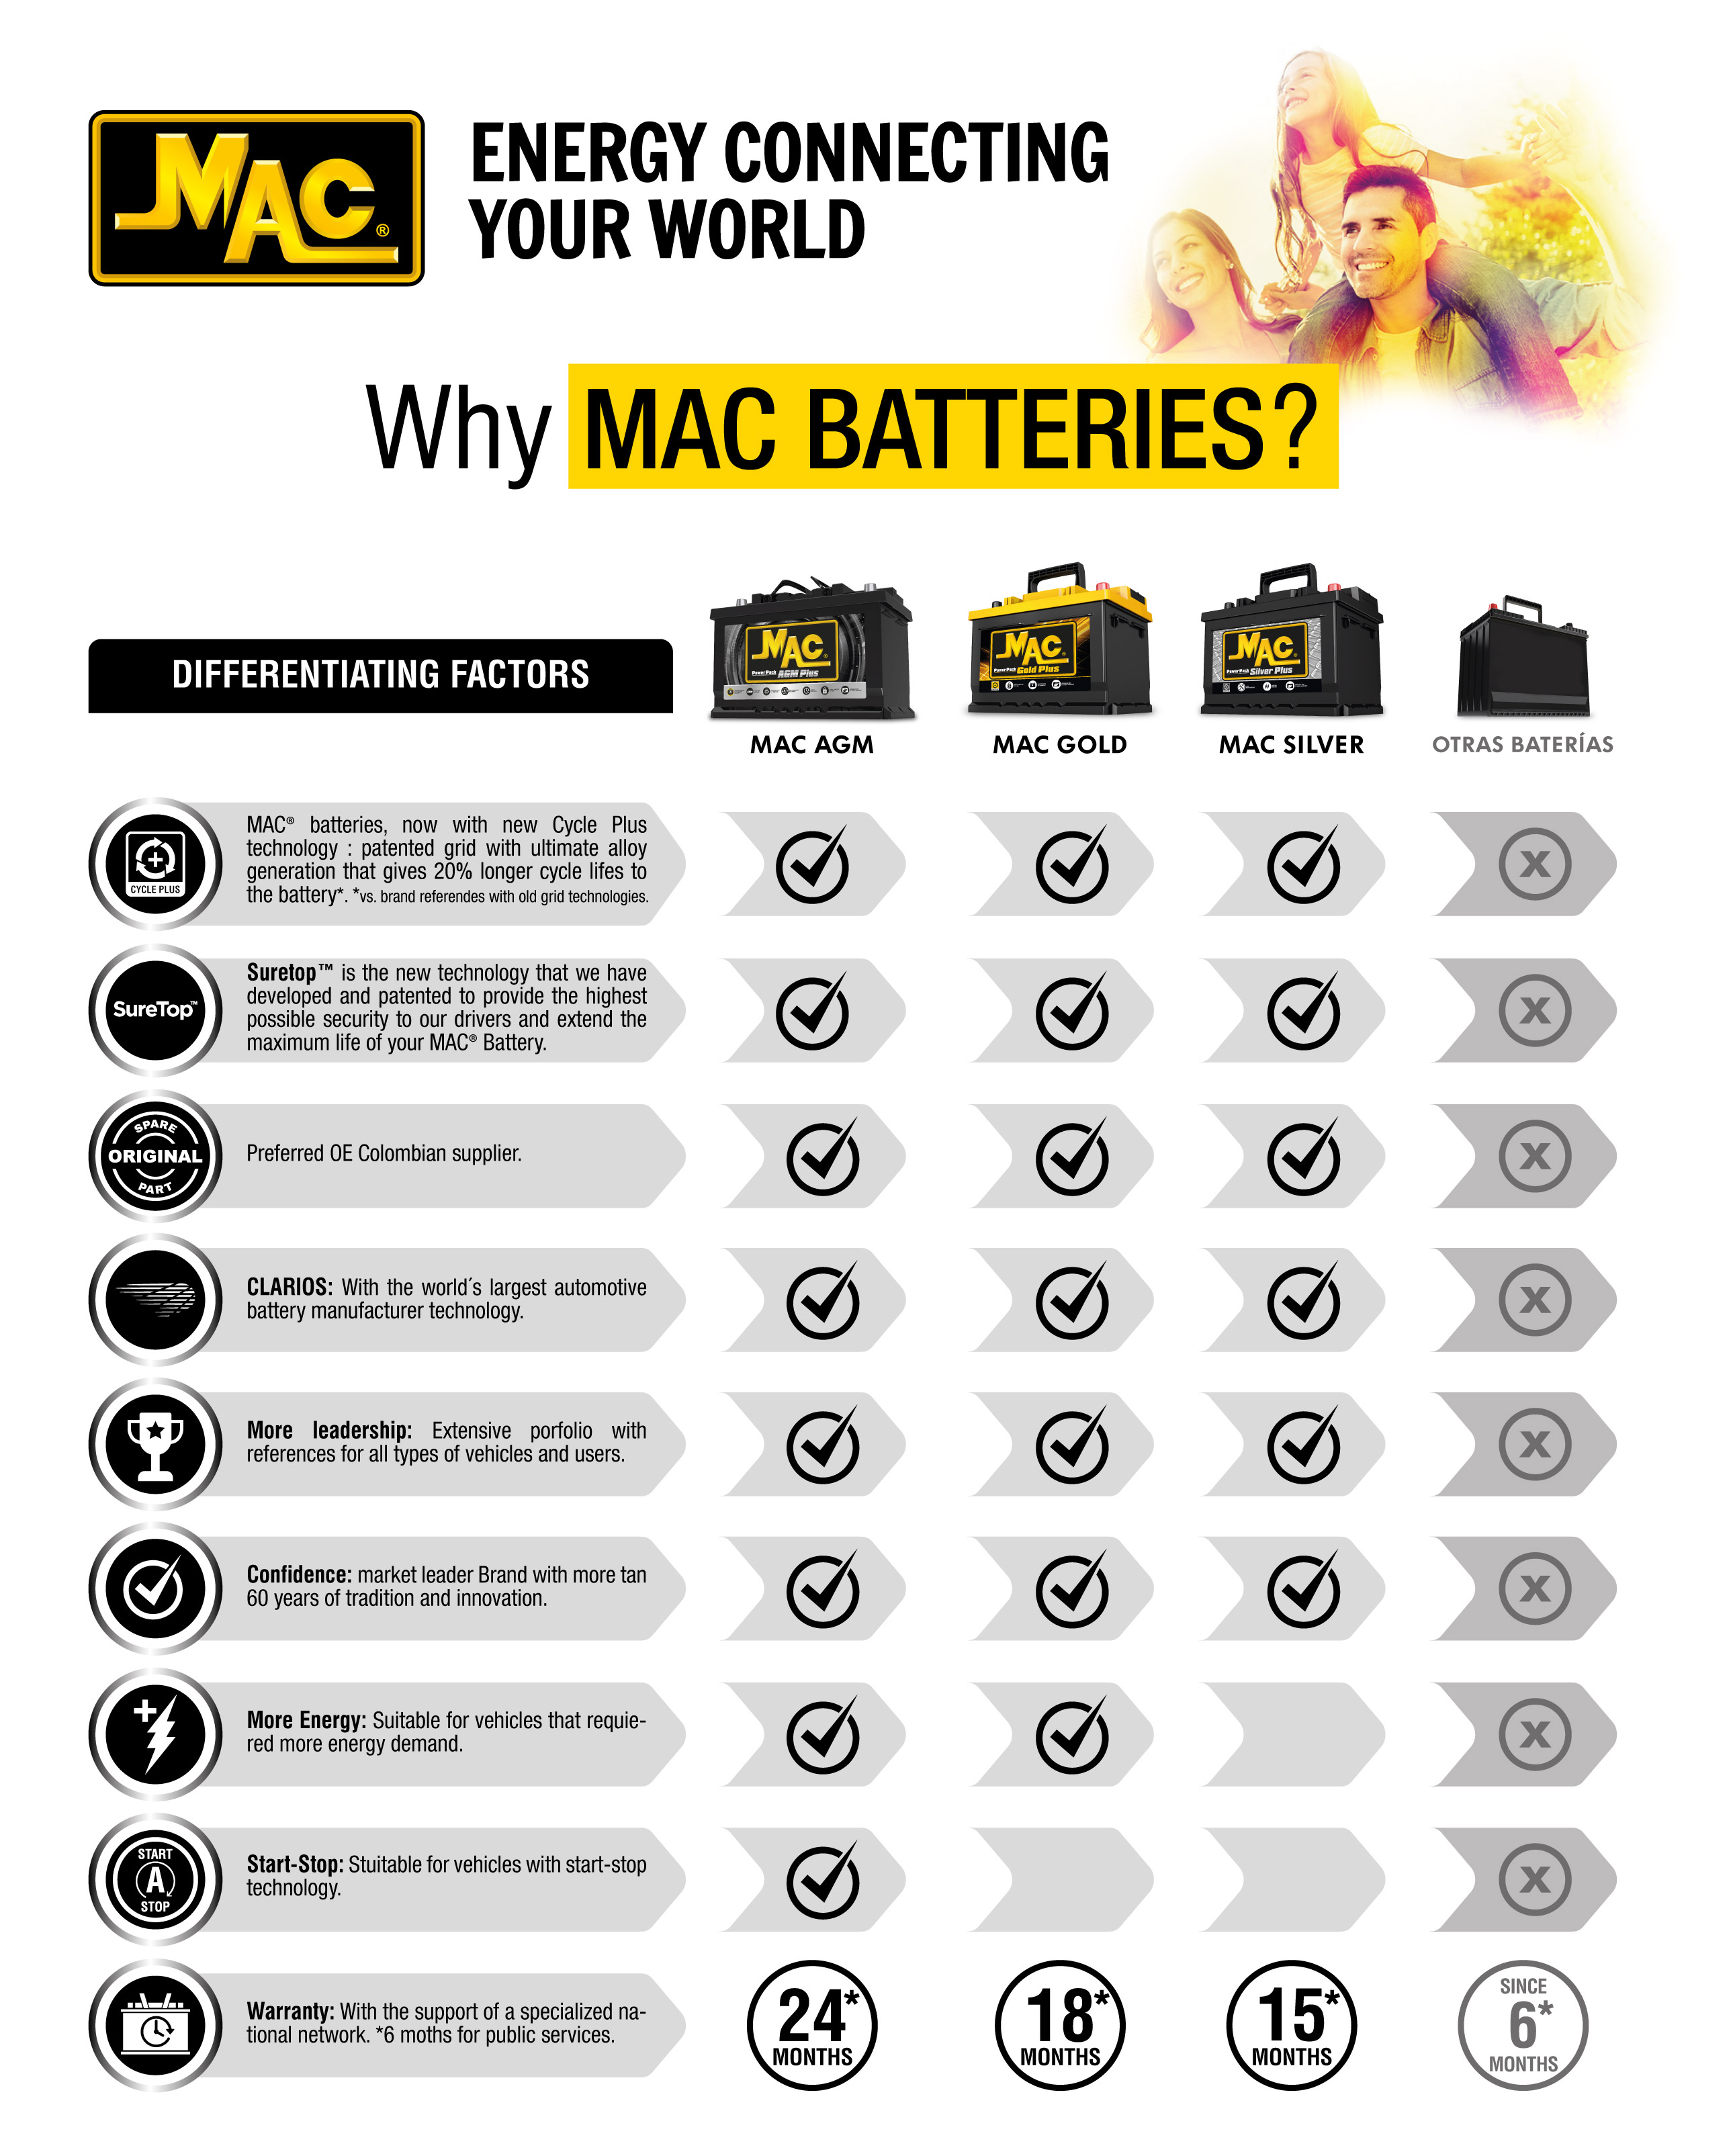 Why Mac batteries